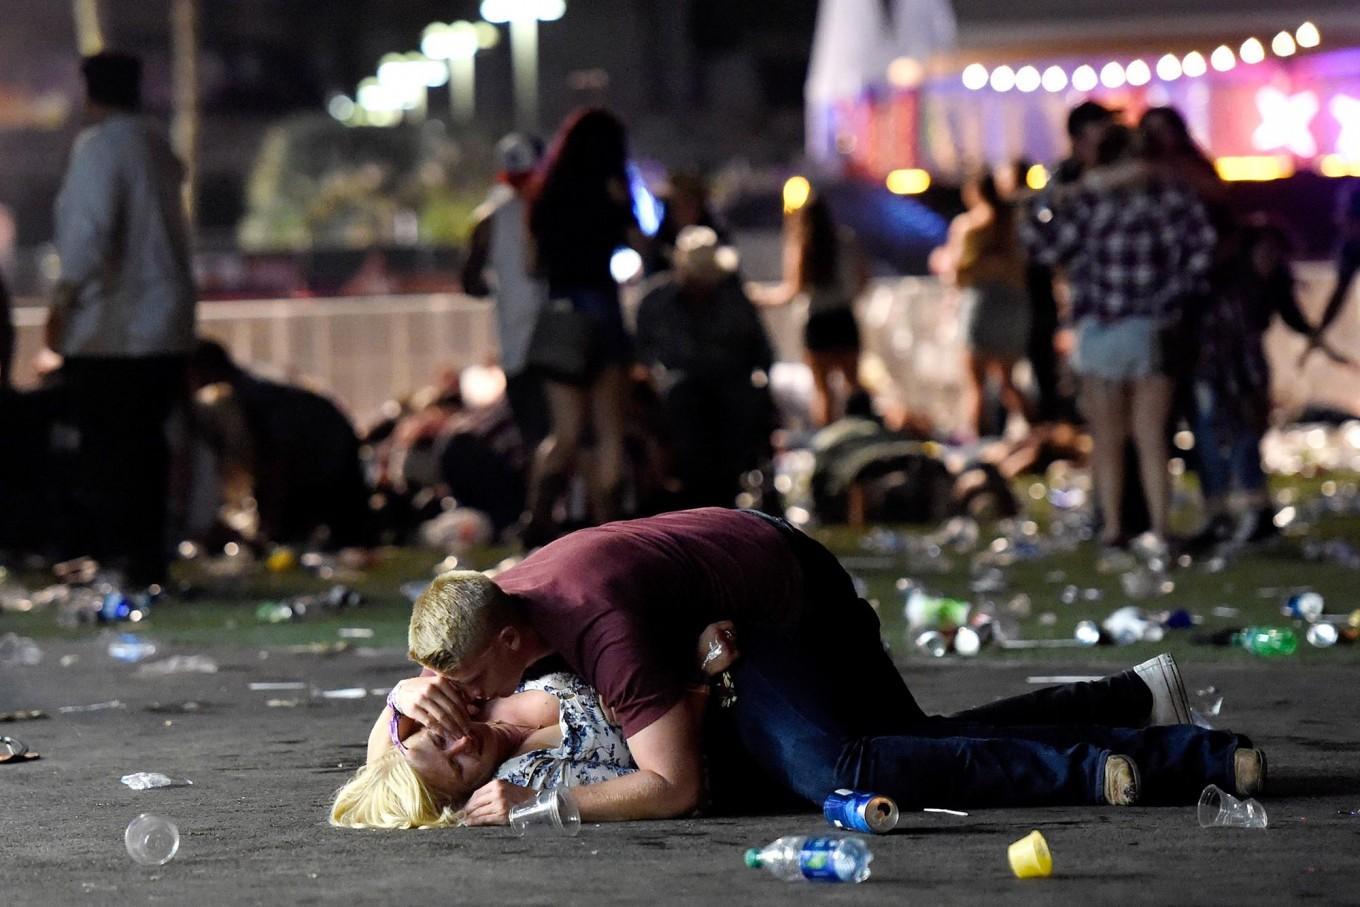 A man lays on top of a woman as others flee the Route 91 Harvest country music festival grounds after a active shooter was reported on October 1, 2017 in Las Vegas, Nevada. A gunman has opened fire on a music festival in Las Vegas, leaving at least 2 people dead. Police have confirmed that one suspect has been shot. The investigation is ongoing. AFP/Getty Images/David Becker